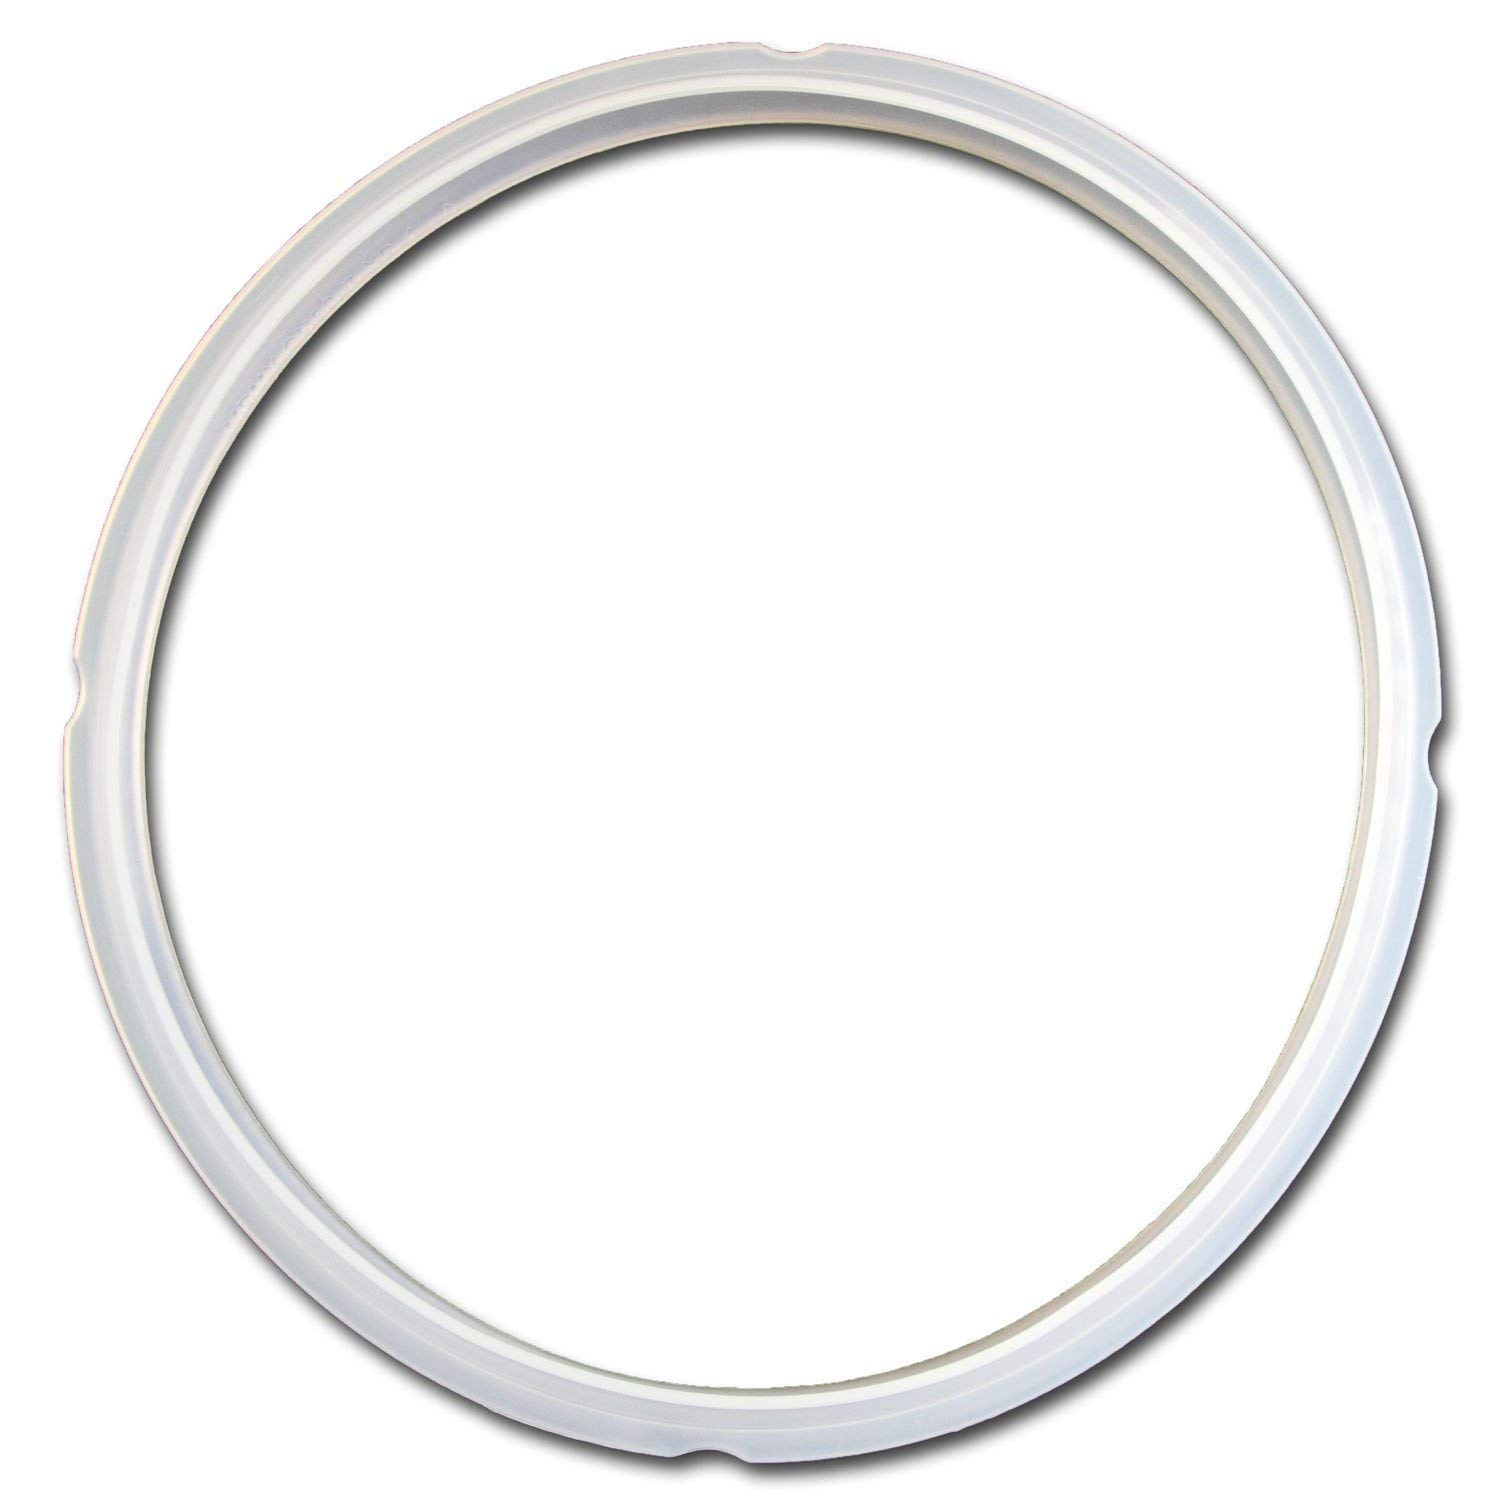 Sealing Ring For GoWISE USA 8 QT Electric Pressure Cooker Model: GW22623